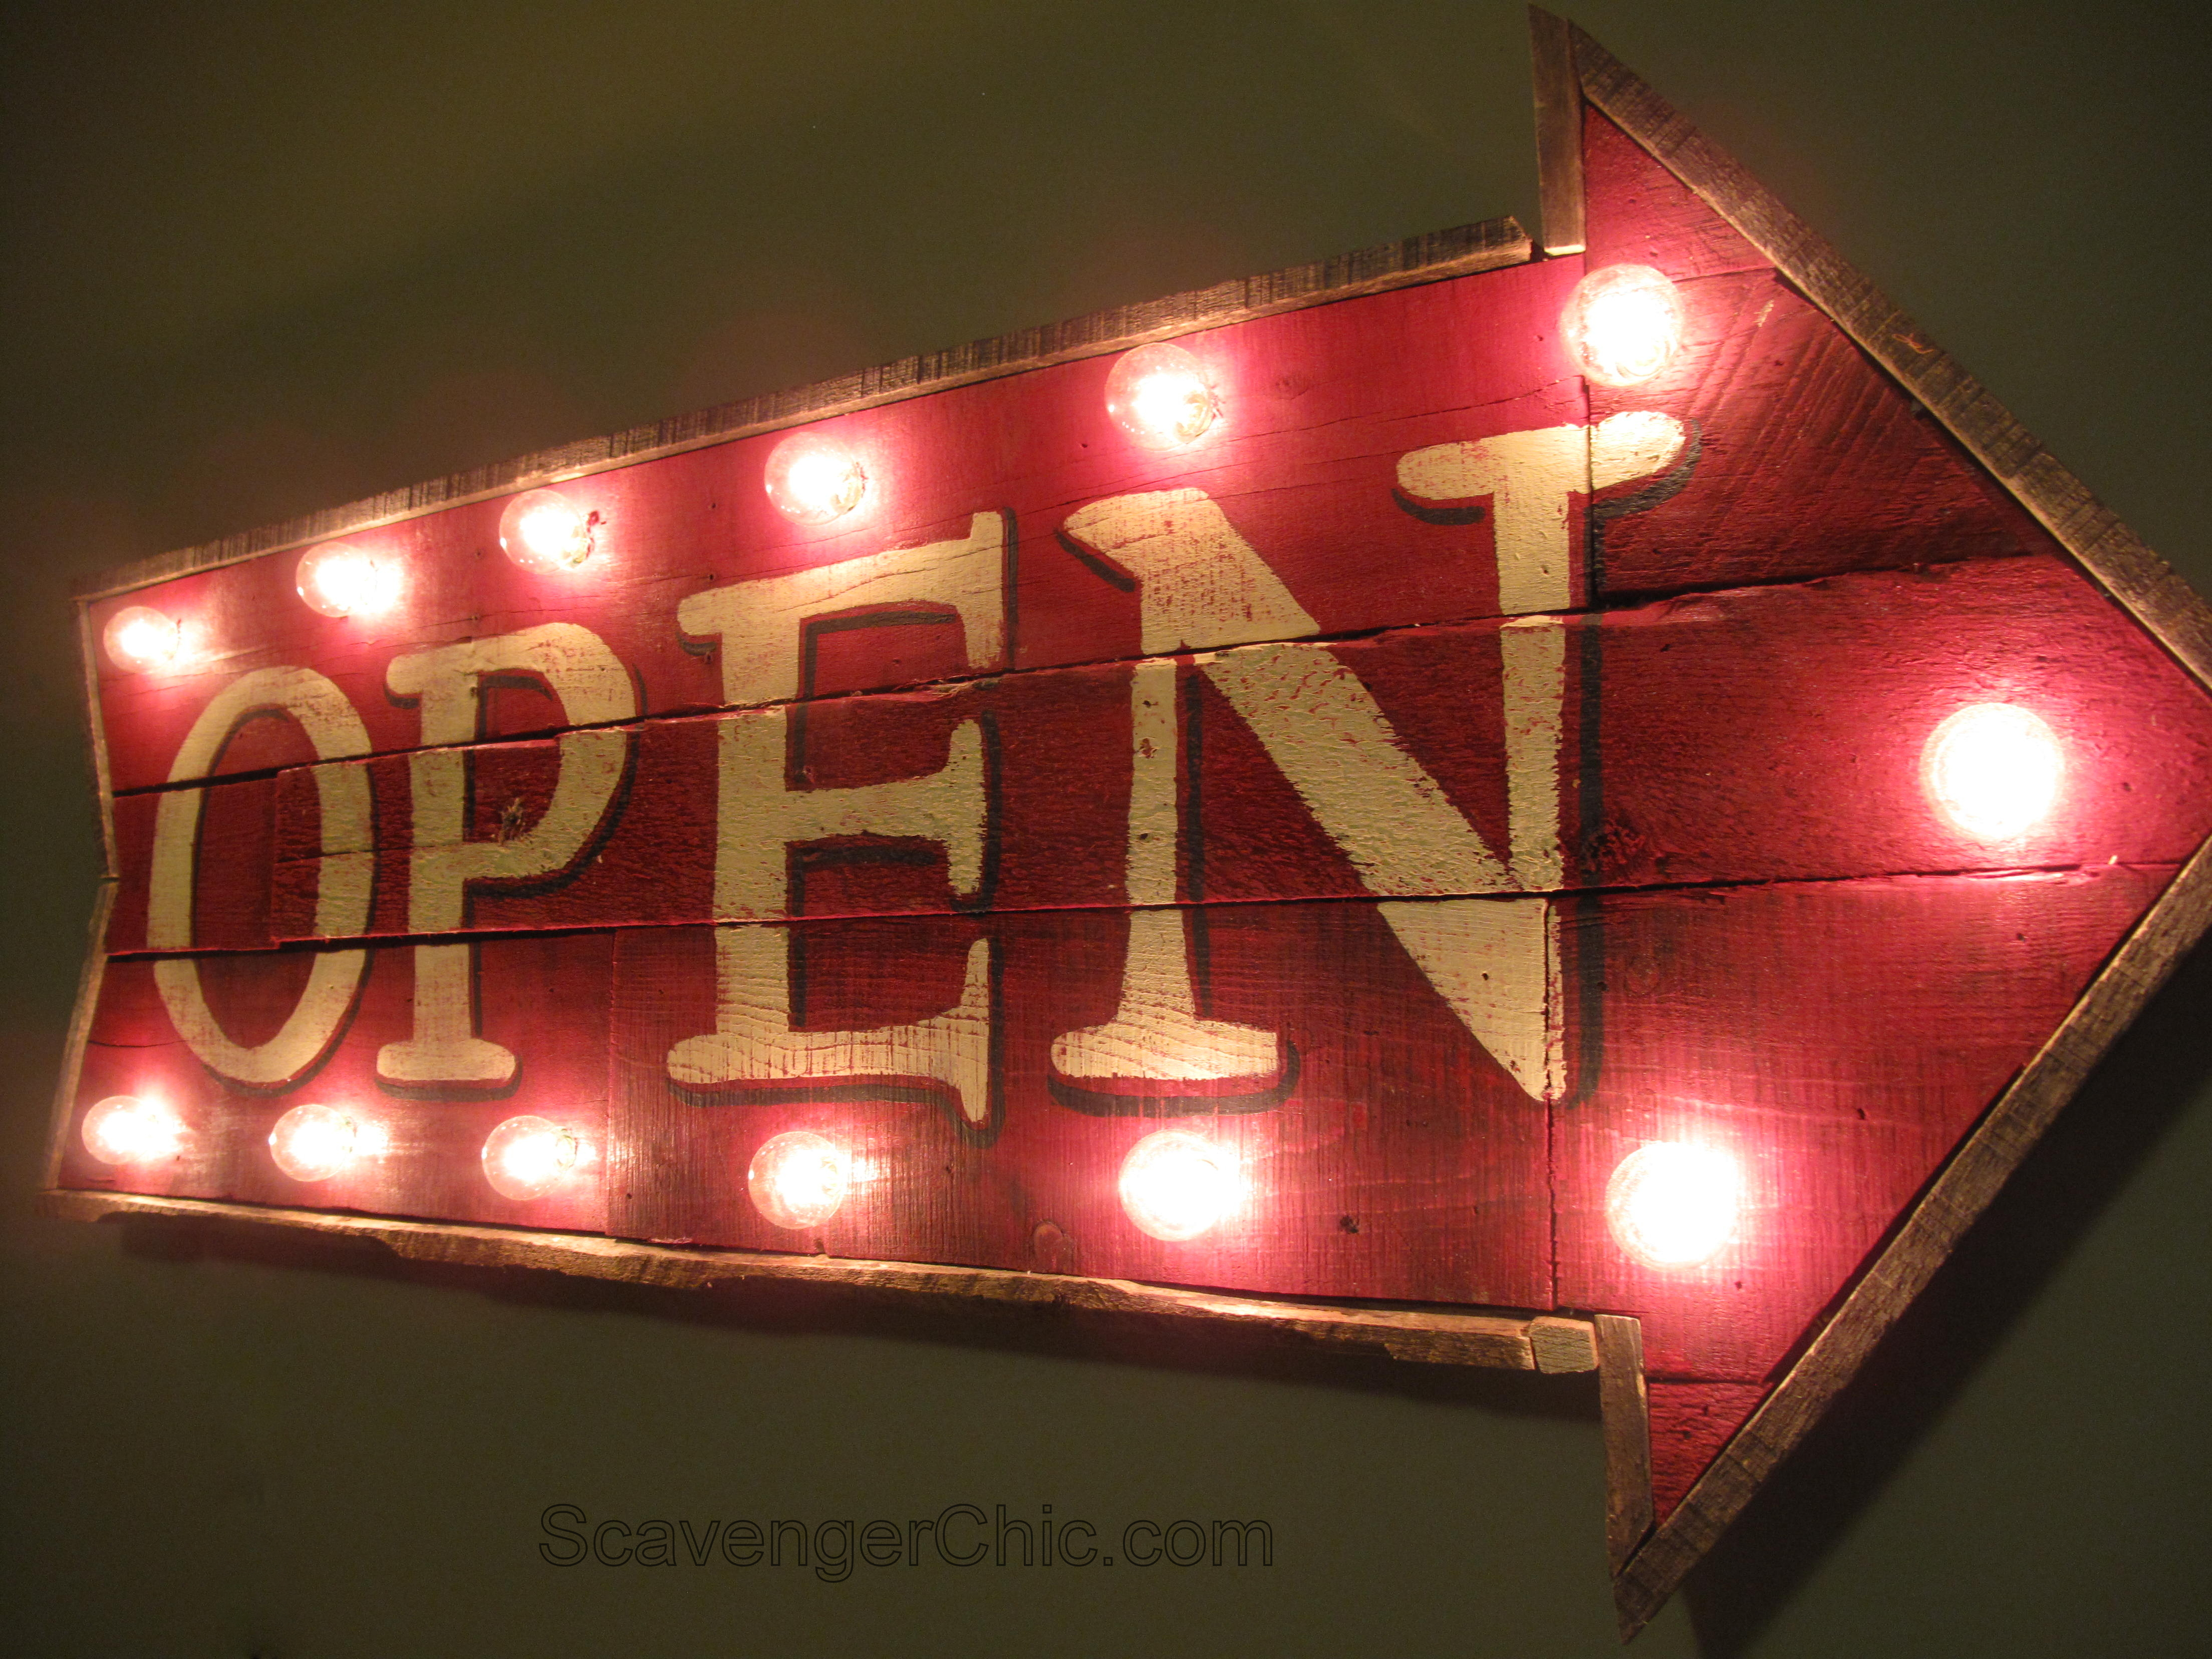 Pallet wood open sign with lights diy scavenger chic pallet wood open lighted sign diy marquee open sign open sign with lights solutioingenieria Choice Image